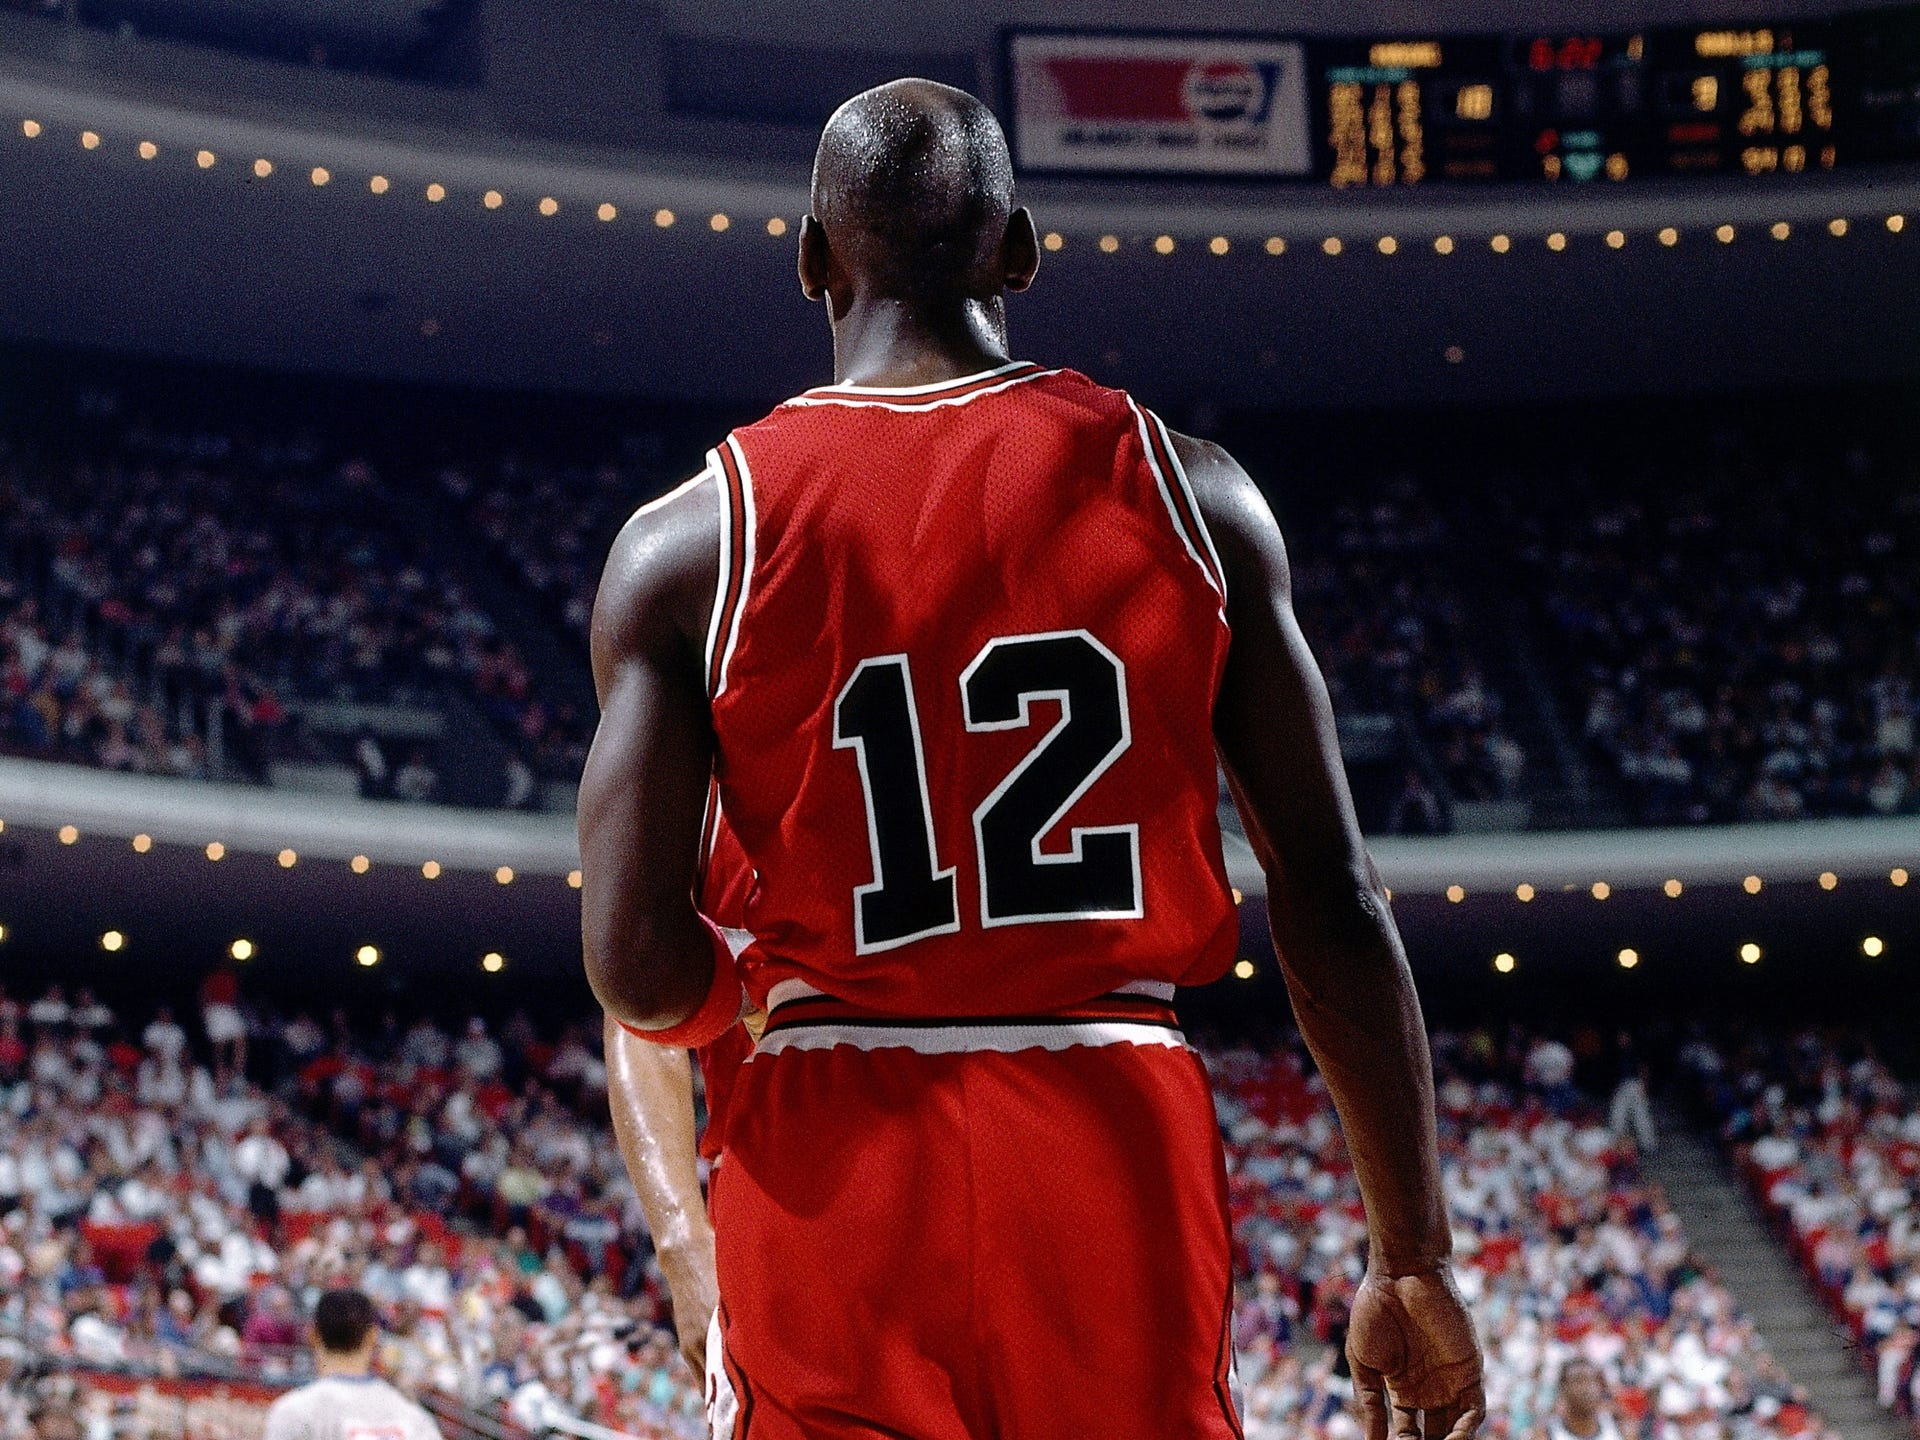 timeless design 40478 90fcc The greatest No. 12 of all-time: Michael Jordan